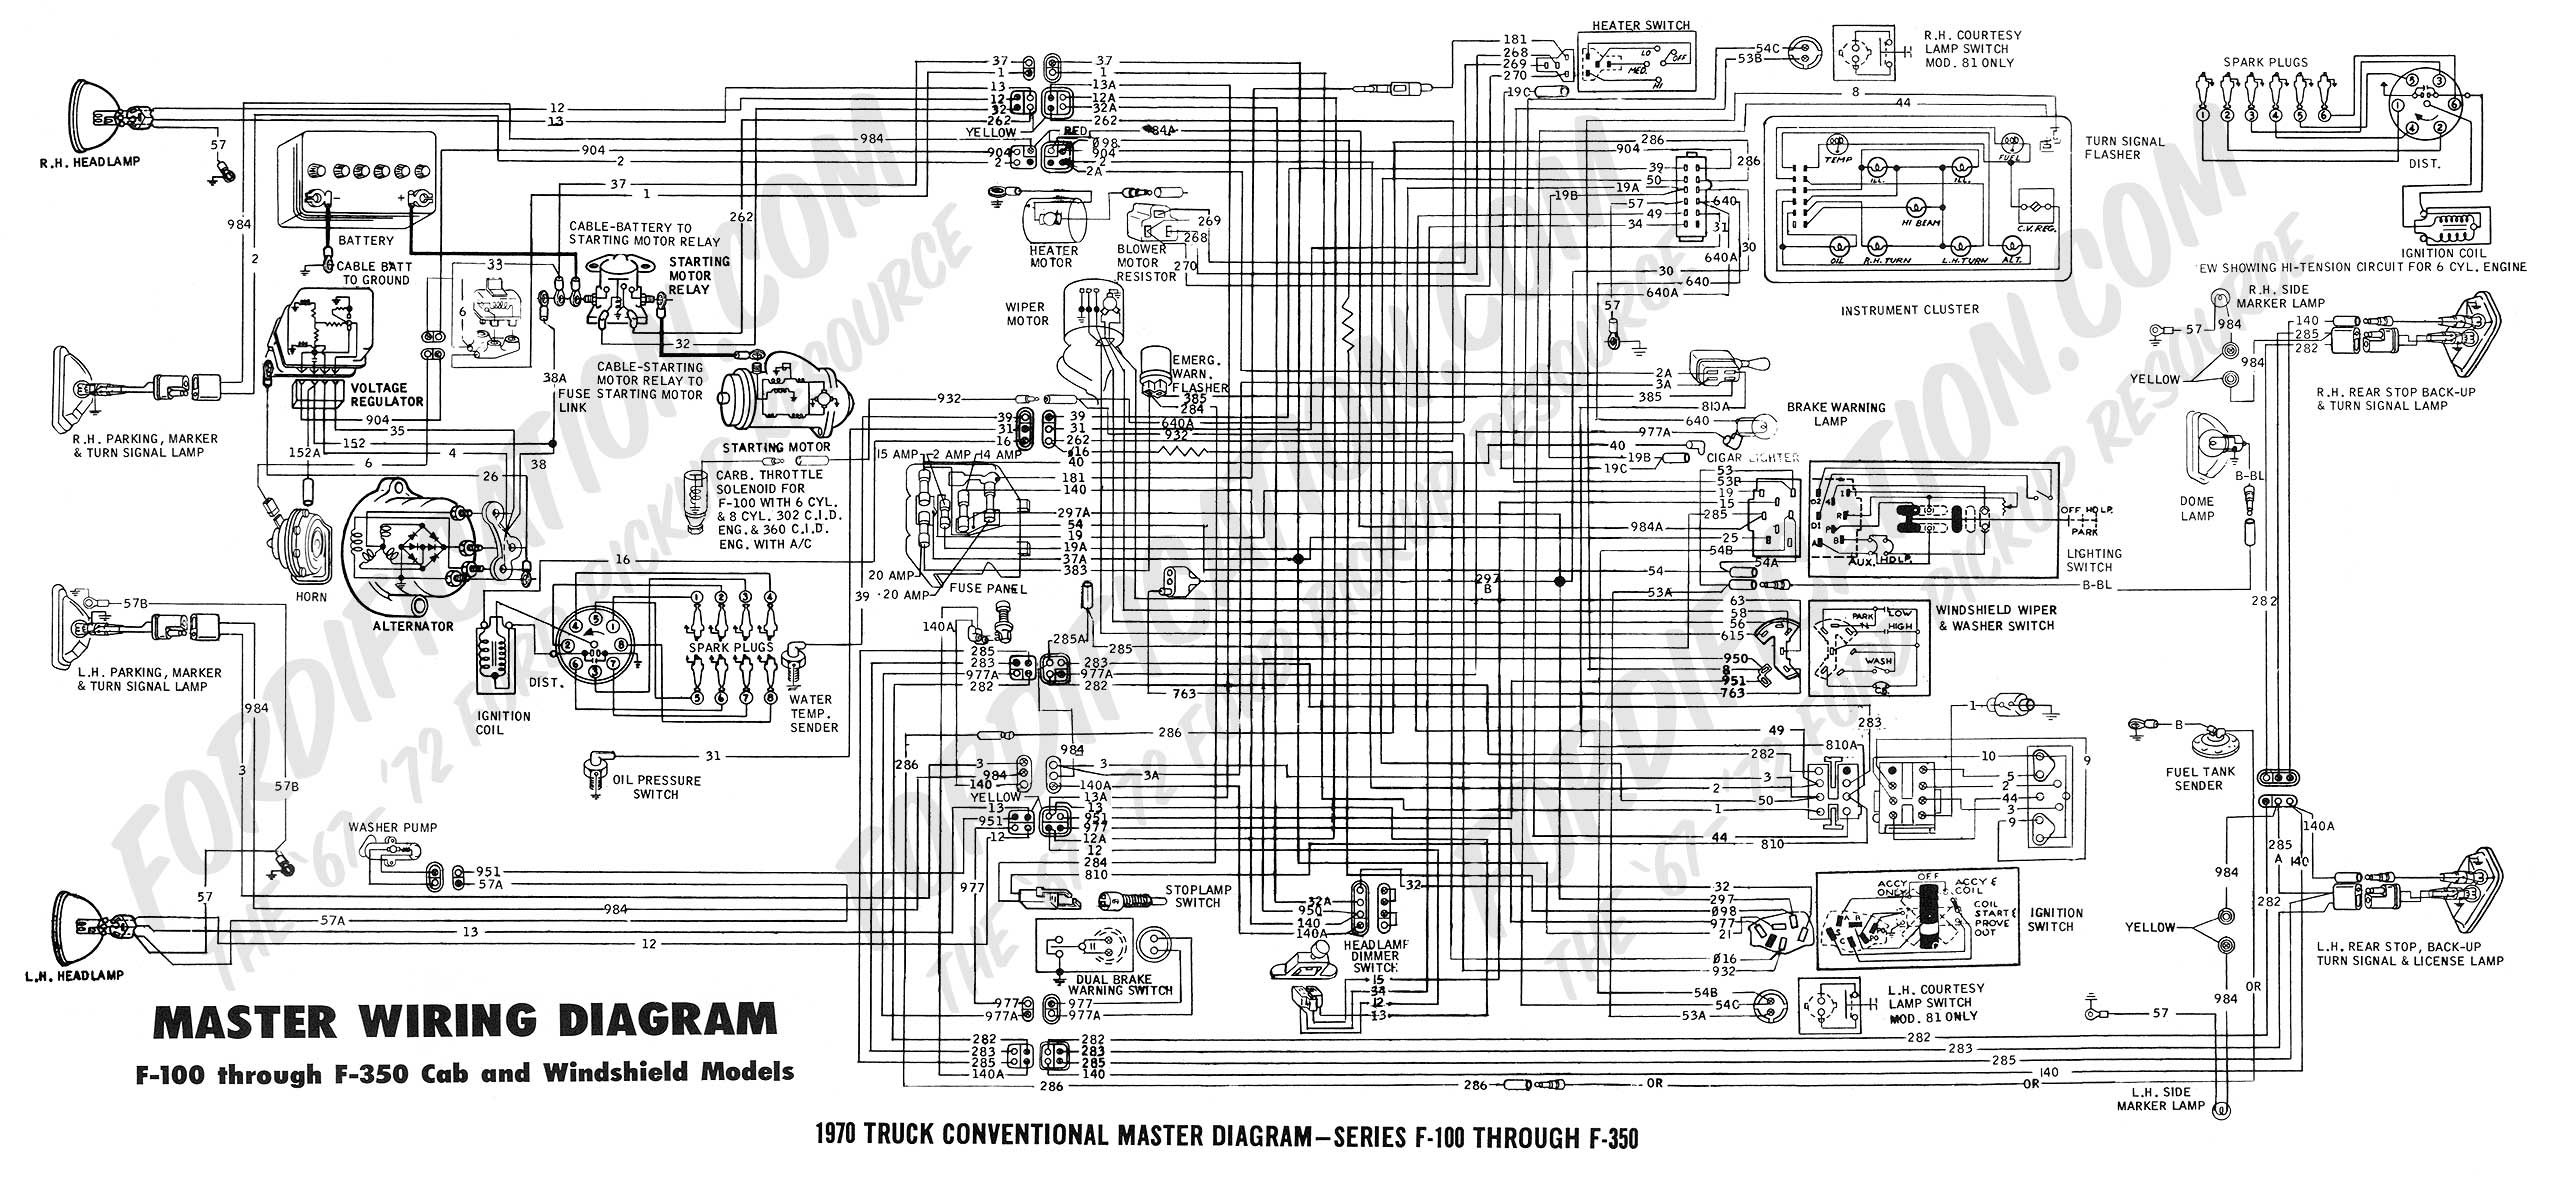 1989 ford f 350 wiring diagram trusted wiring diagrams u2022 rh sivamuni com 1989 f250 headlight wiring diagram 1989 f250 radio wiring diagram